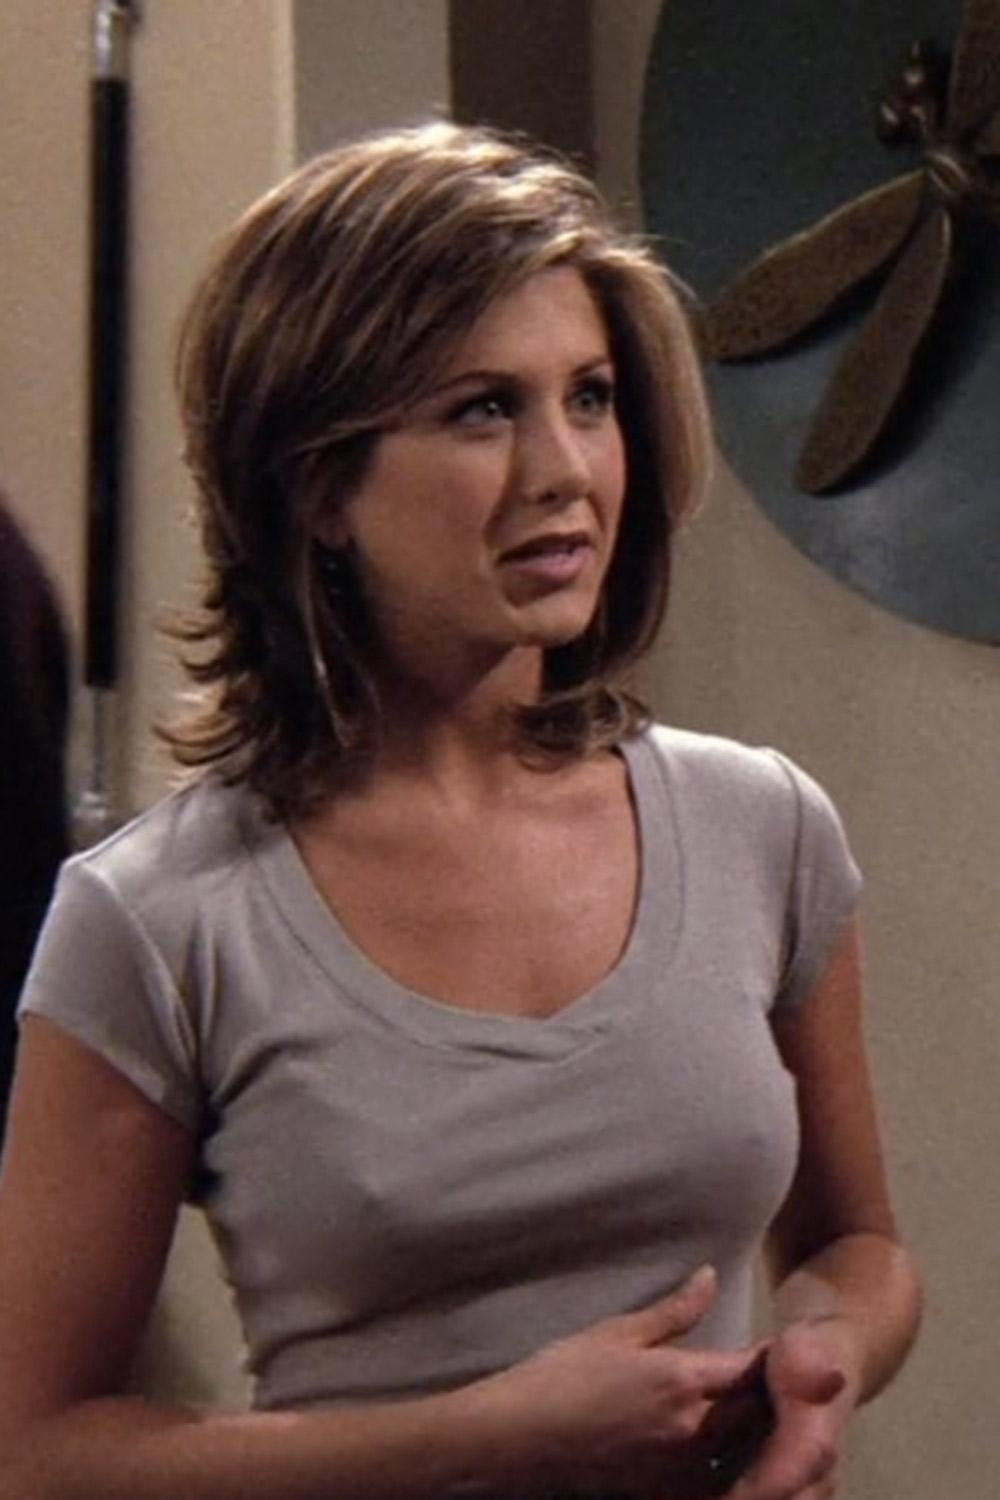 Jennifer aniston defends her life, love, and her nipples